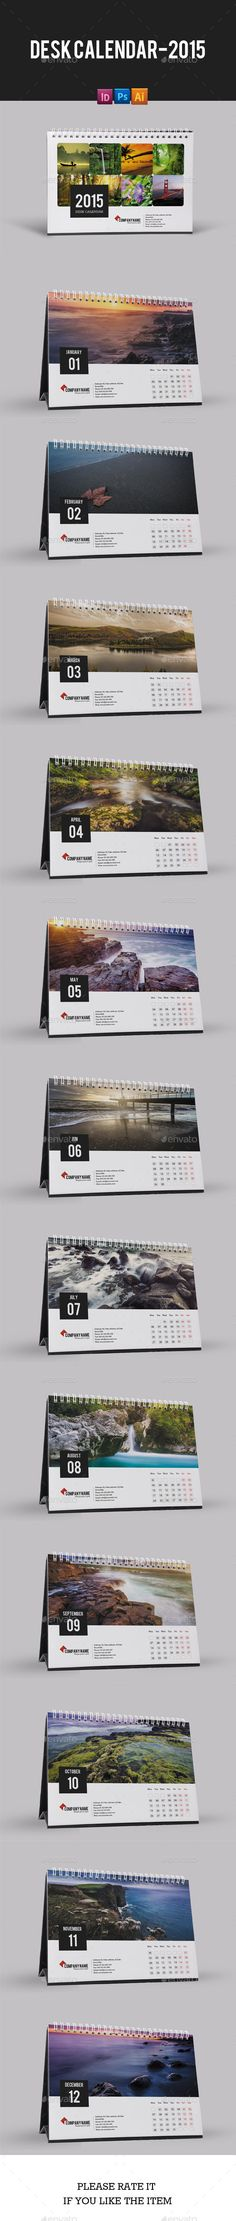 Desk Calendar for 2015 - Calendars Stationery                              …